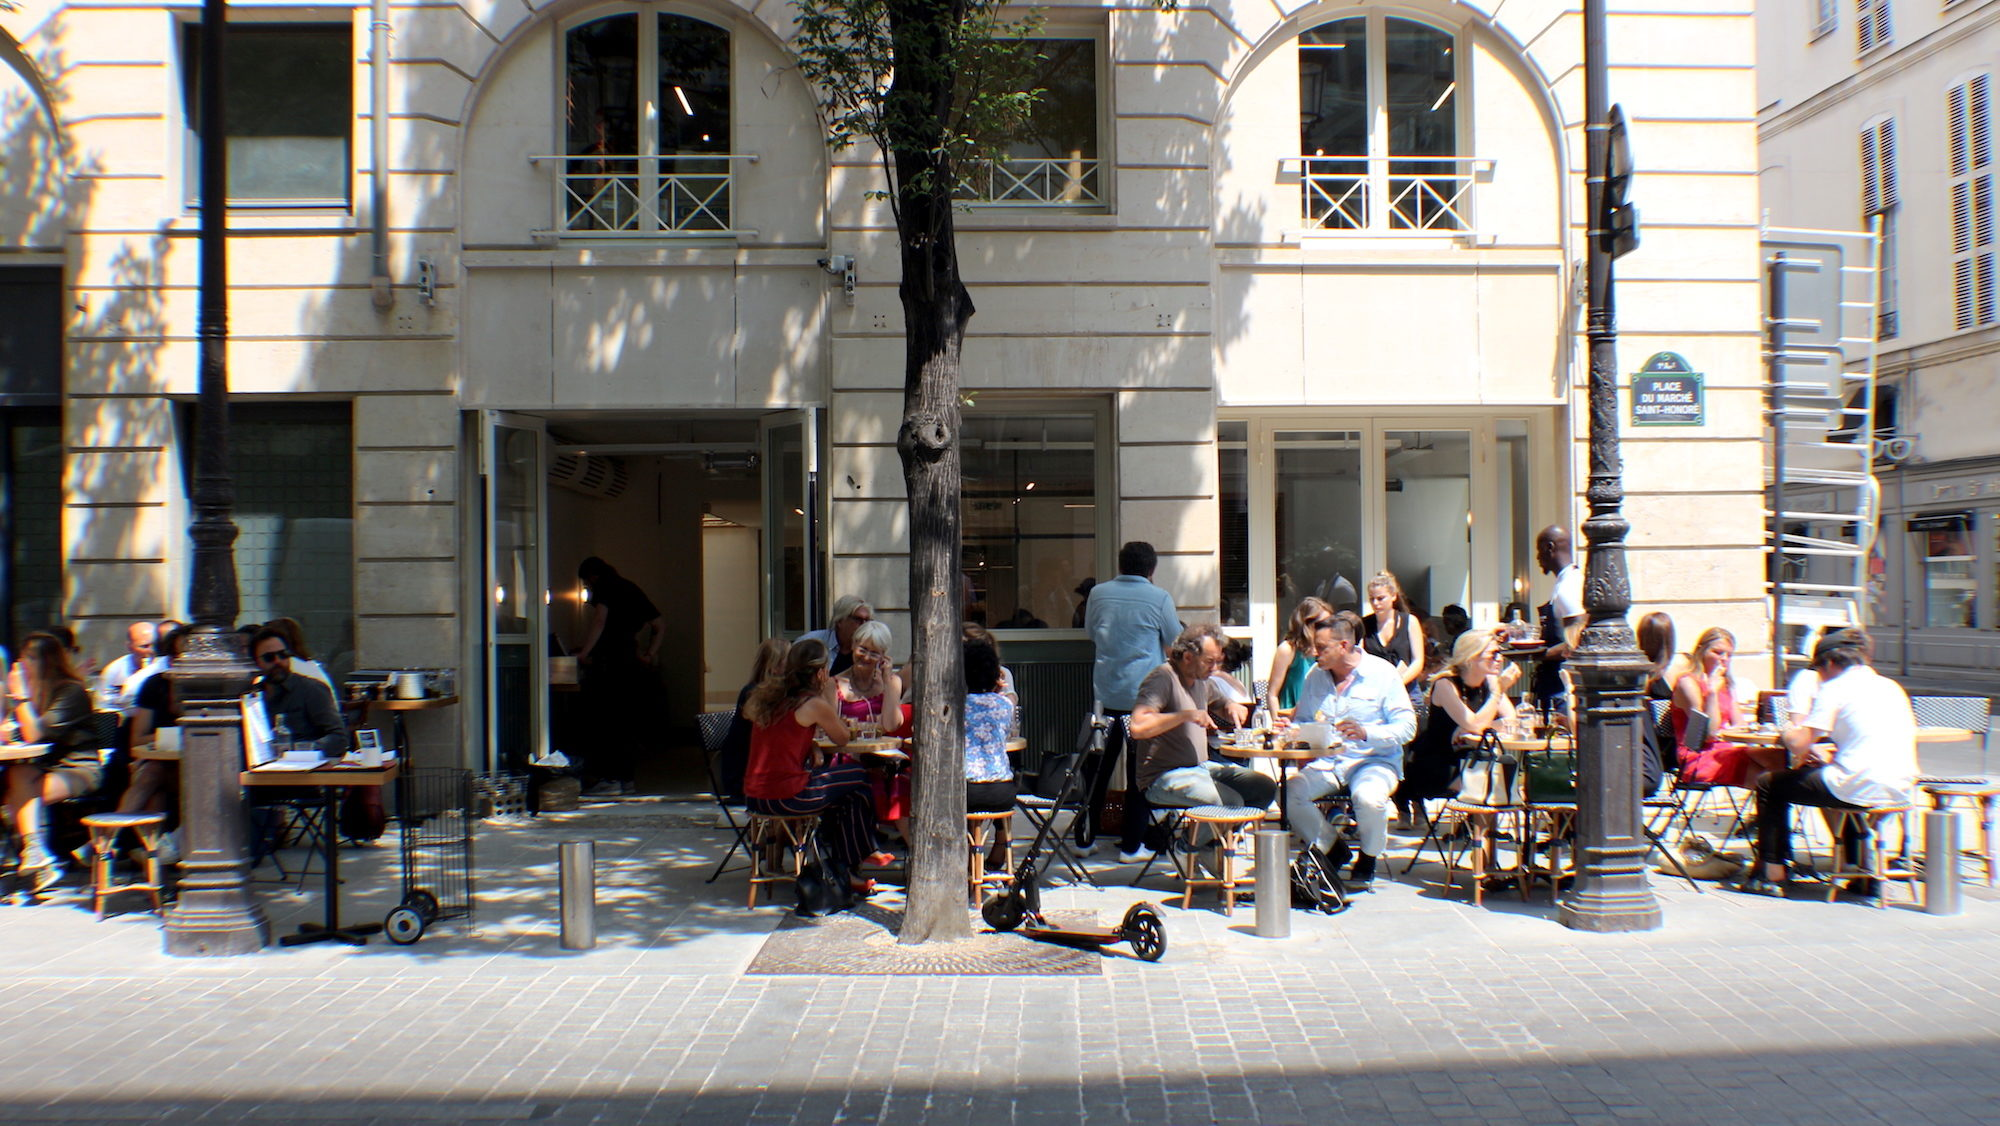 Maison Plisson coffee shop near the Louvre is set on a sunny street corner with an outdoor terrace for enjoying the summer sun.